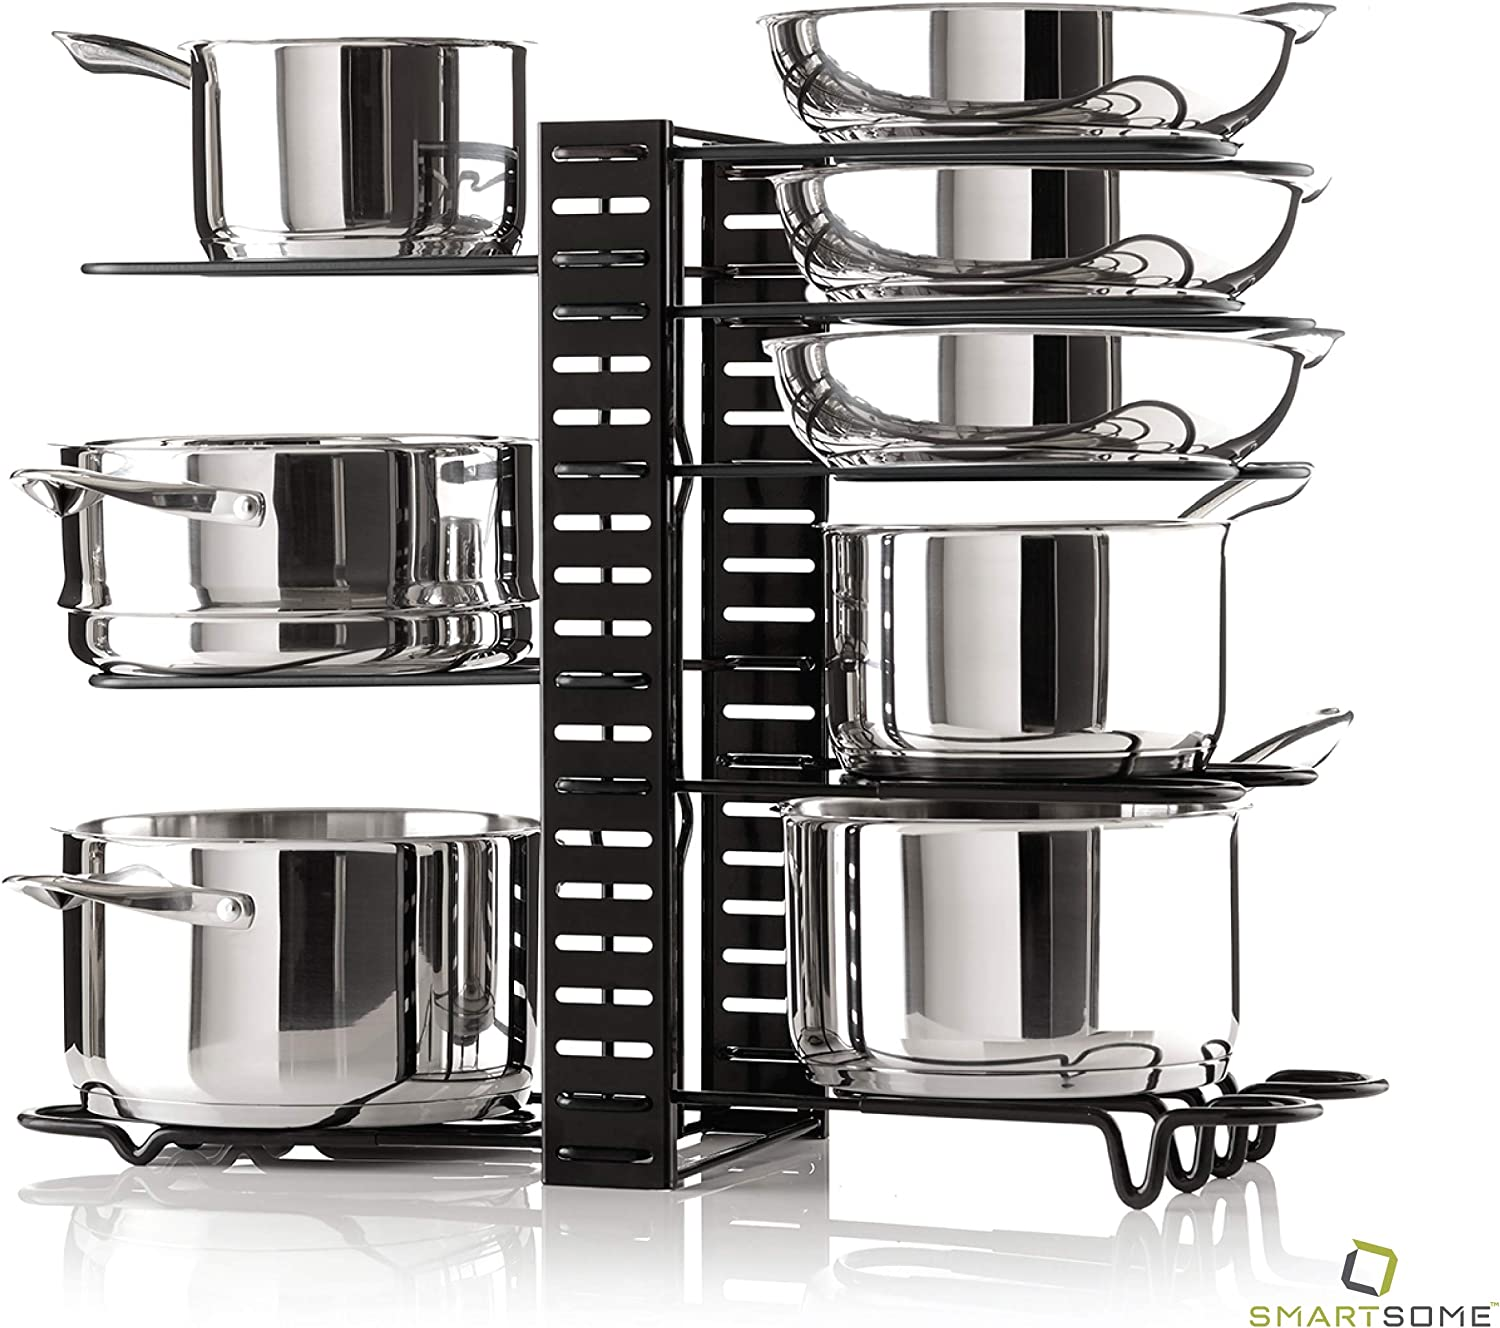 Smartsome Cabinet Organizer - Adjustable Pot Rack Holds A Minimum Of 8+ Pots, Pans And Lids - 3 Different DIY Ways To Use The Pots And Pans Organizer Including On The Counter